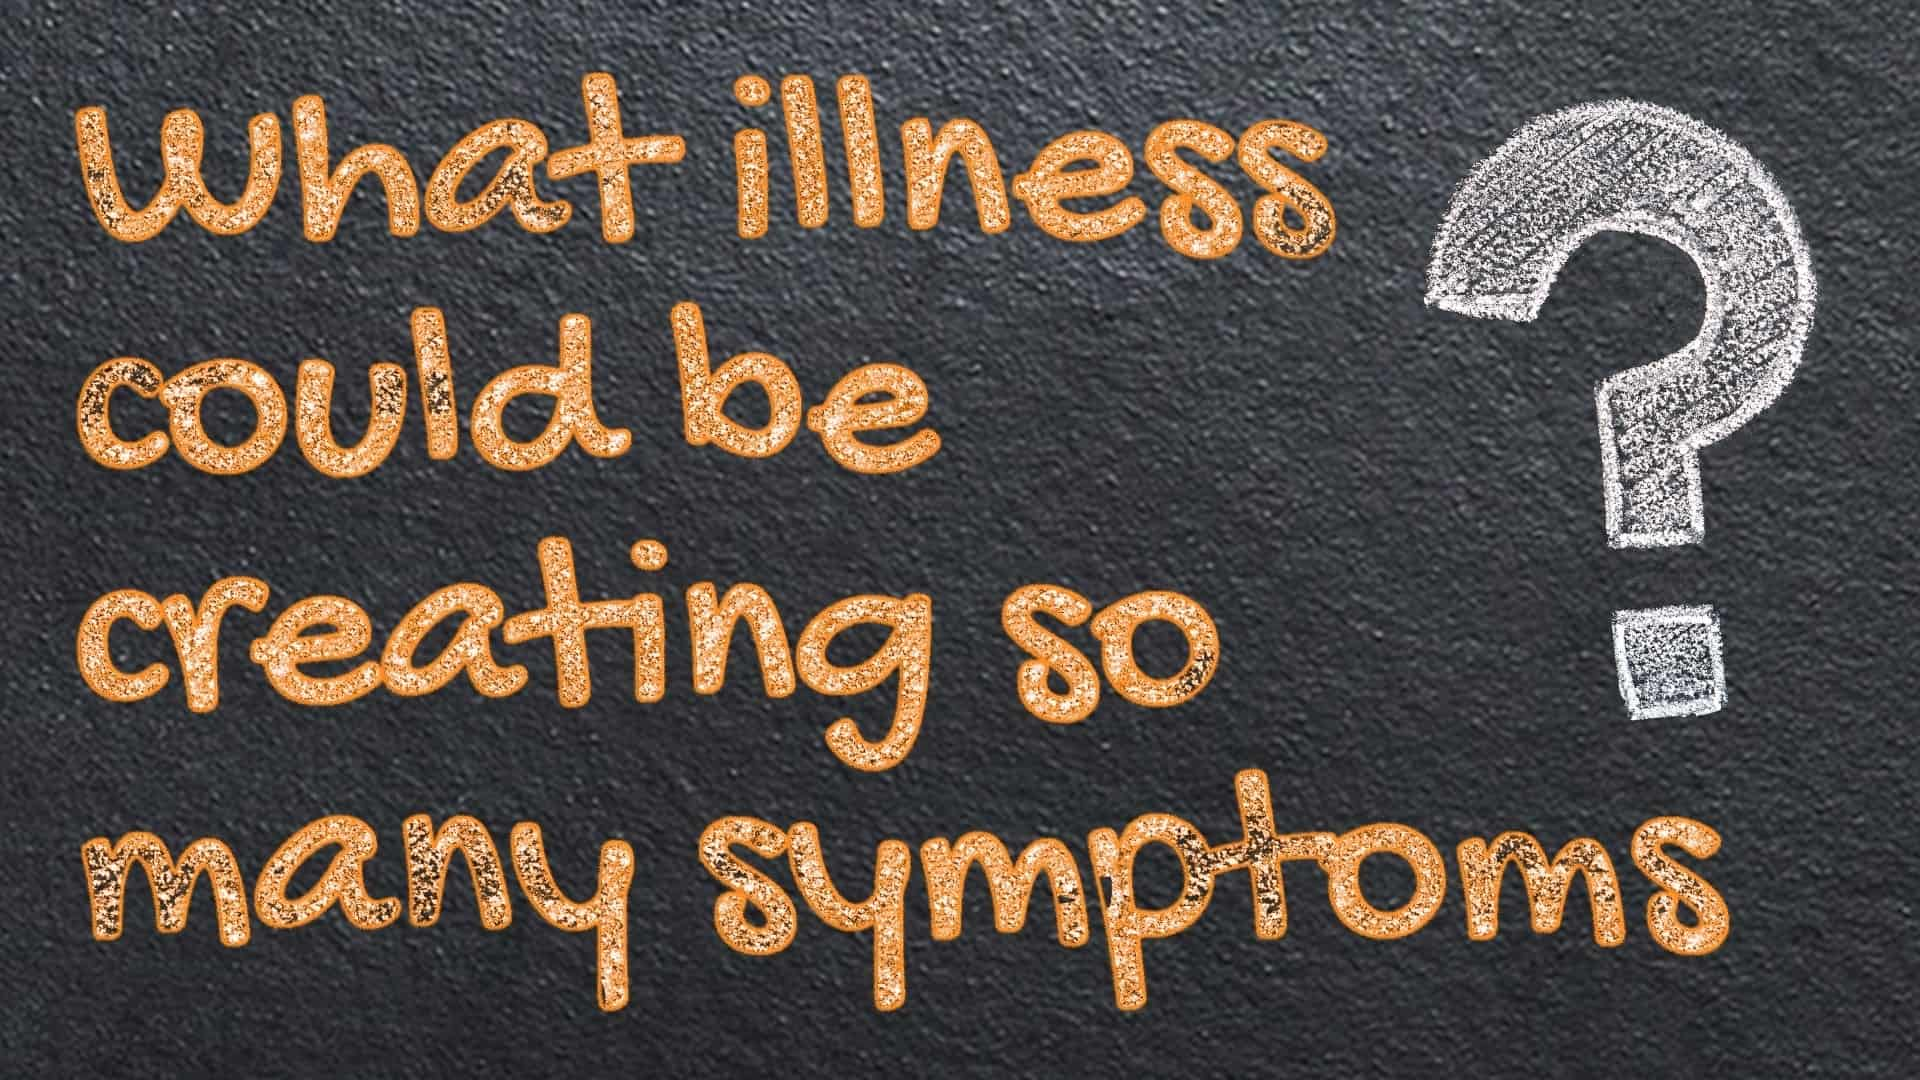 blackboard saying what illness could be creating so many symptoms